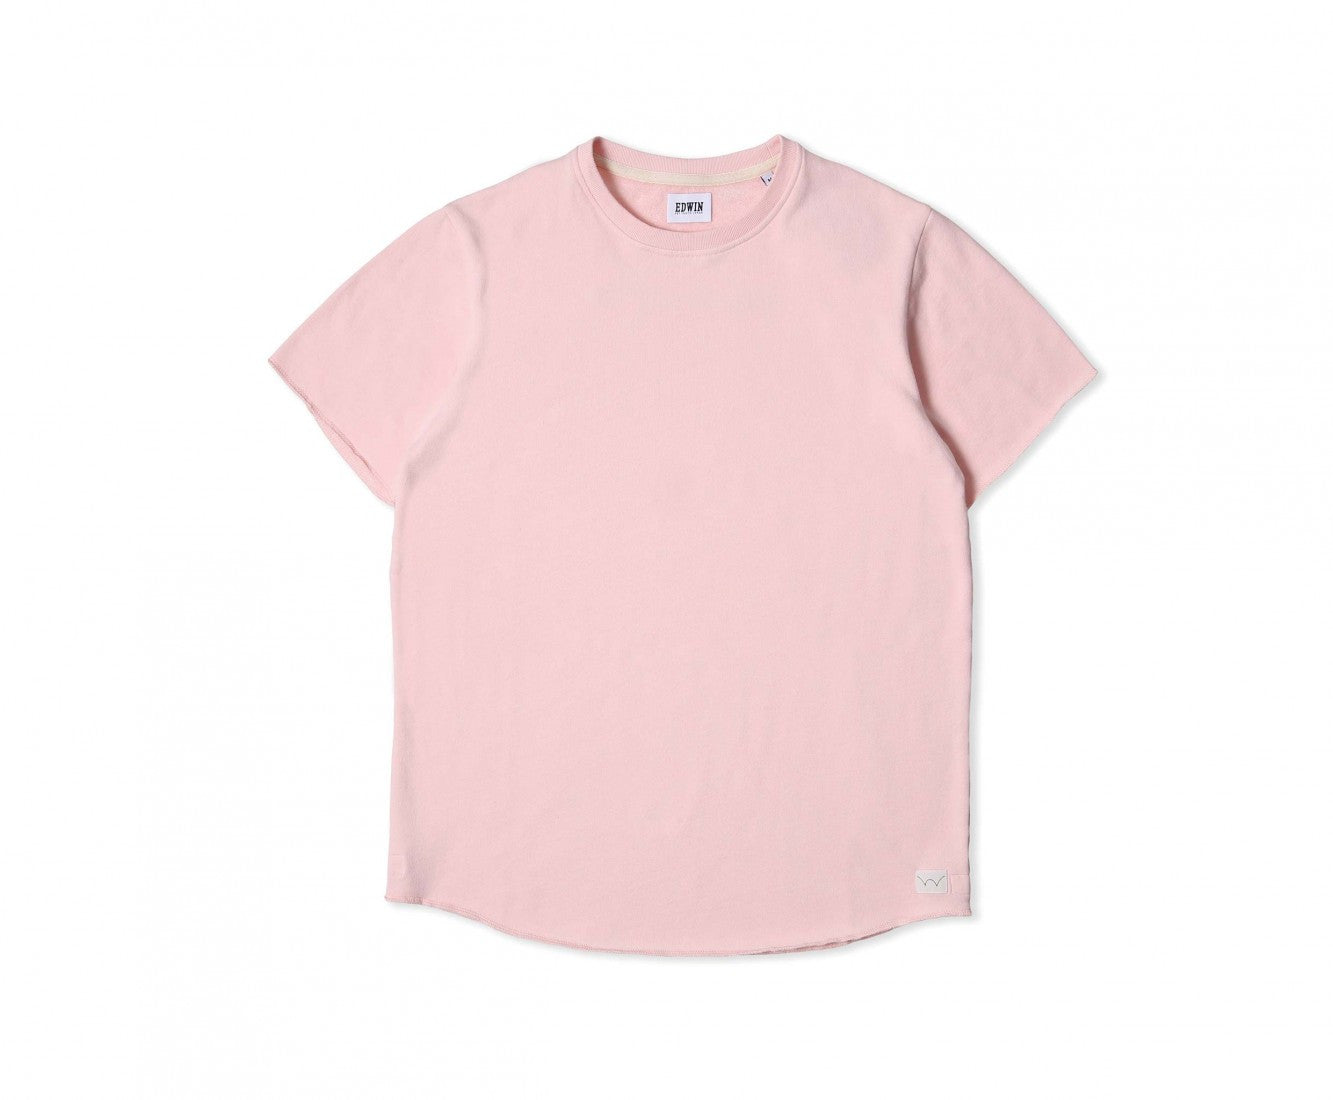 Edwin Europe Terry Tee - Pink-Denim-Navy Selected Shop